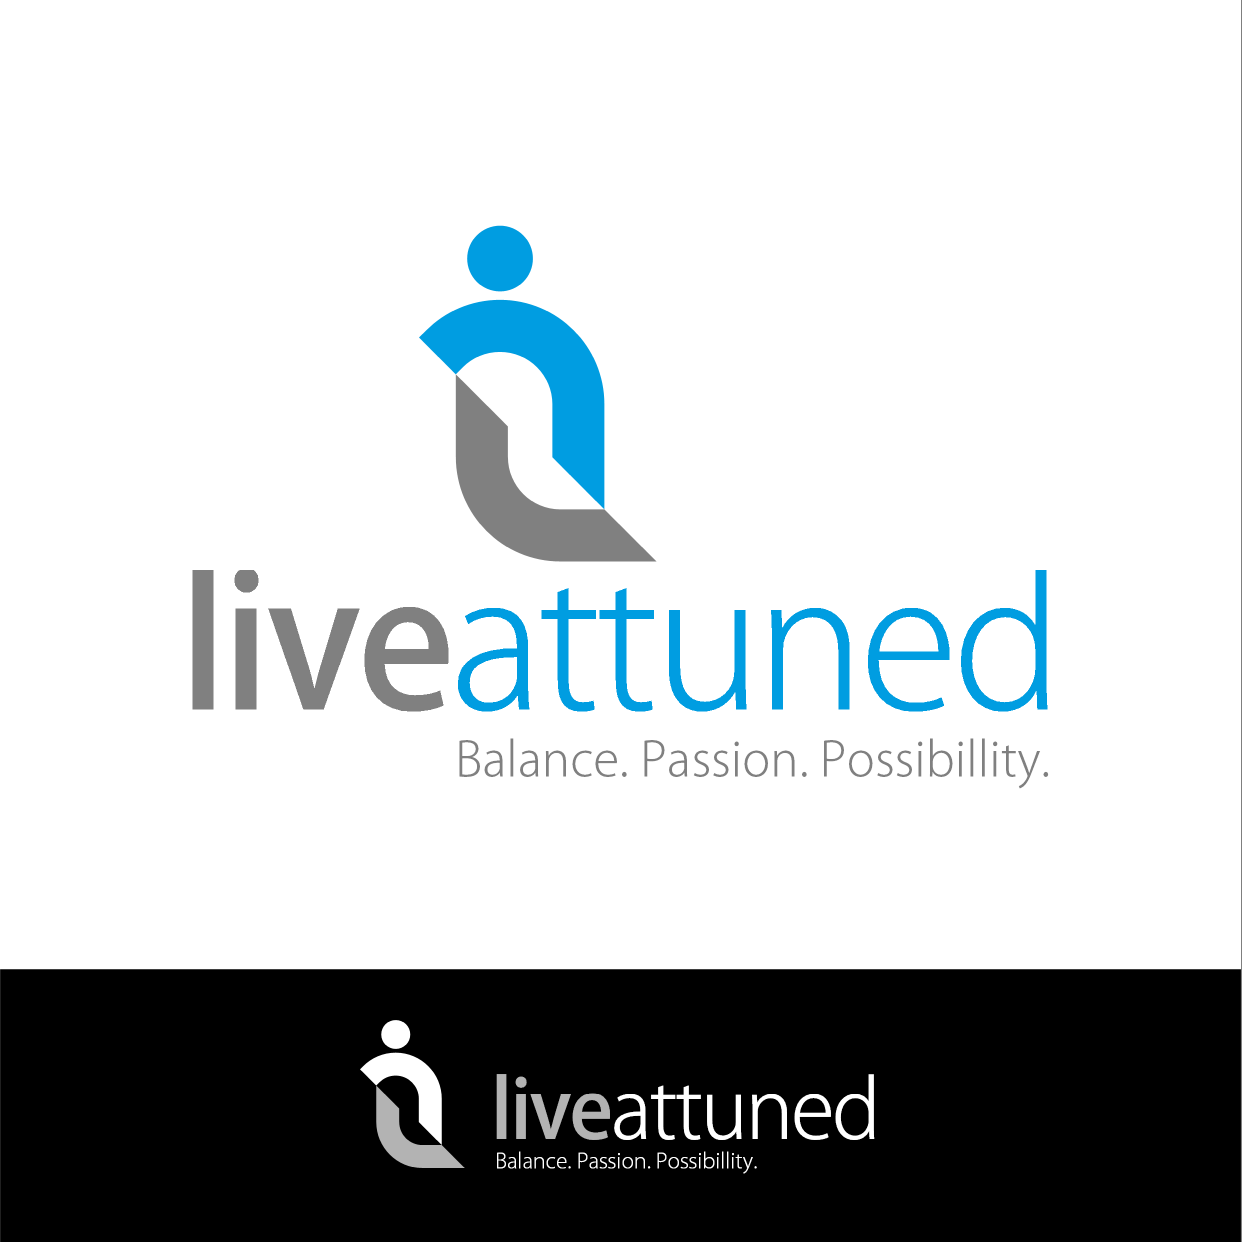 Logo Design by ENNO77 - Entry No. 143 in the Logo Design Contest New Logo Design for Live Attuned.